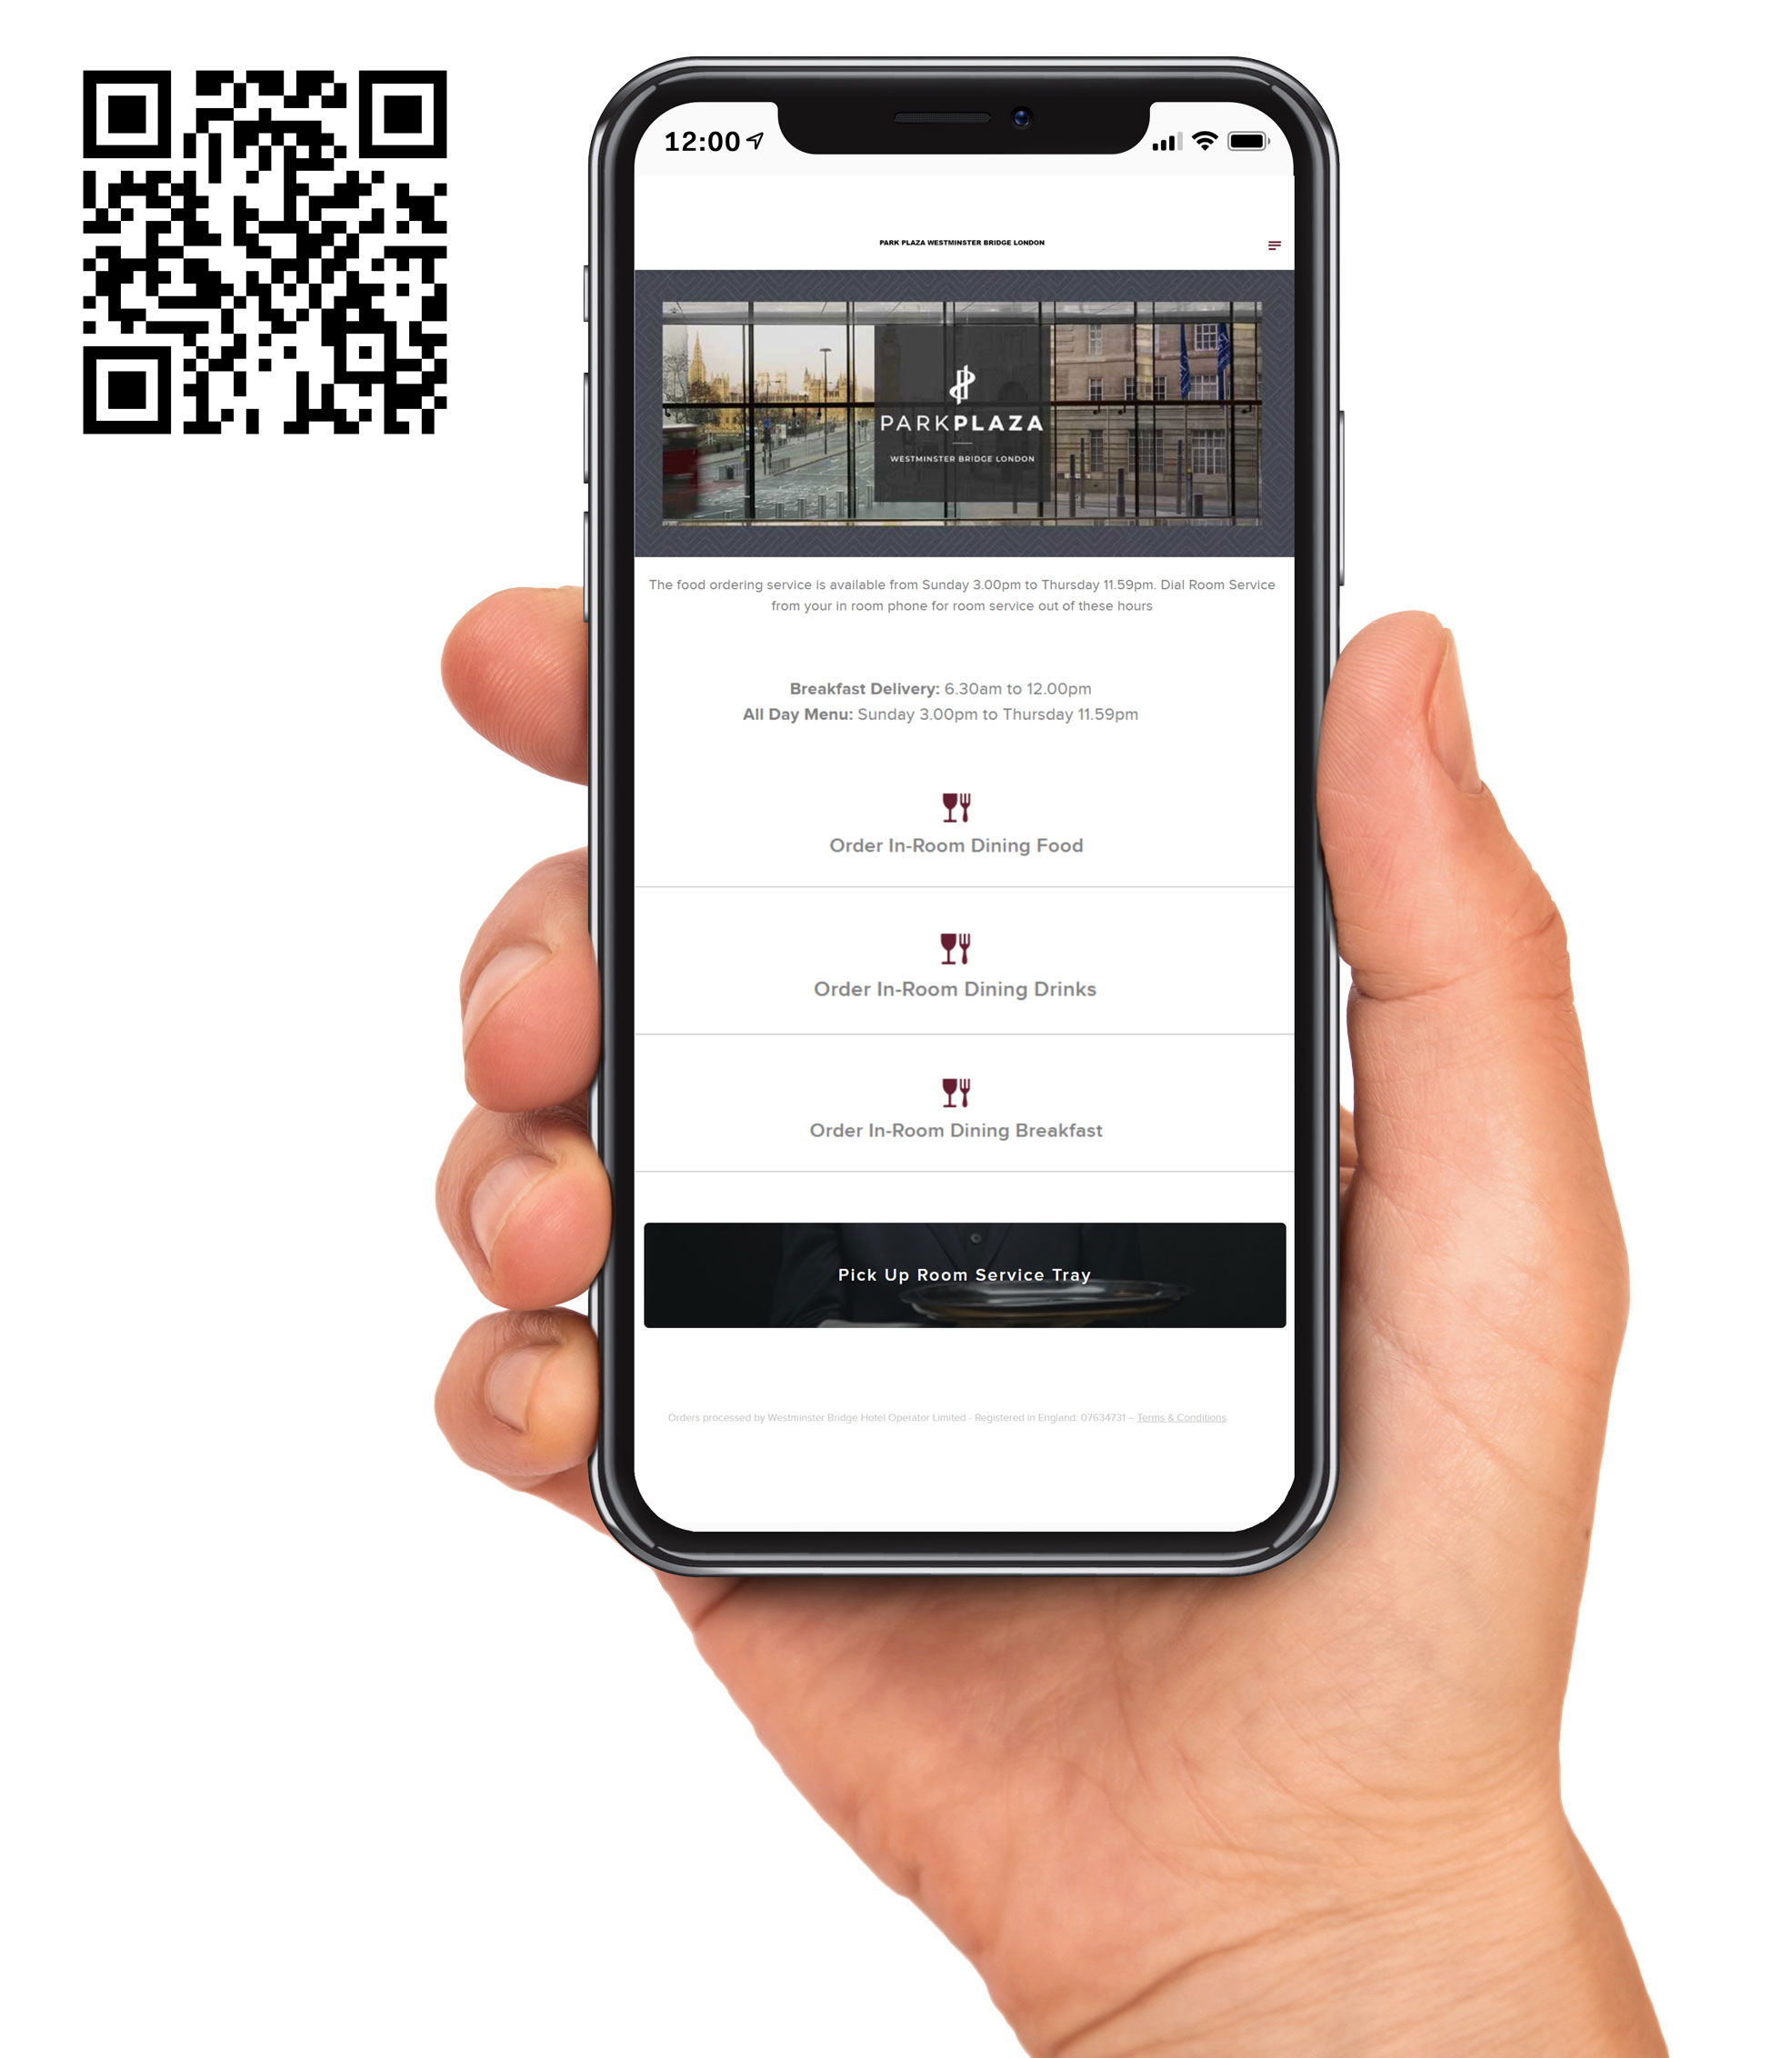 Mobile ordering at park plaza